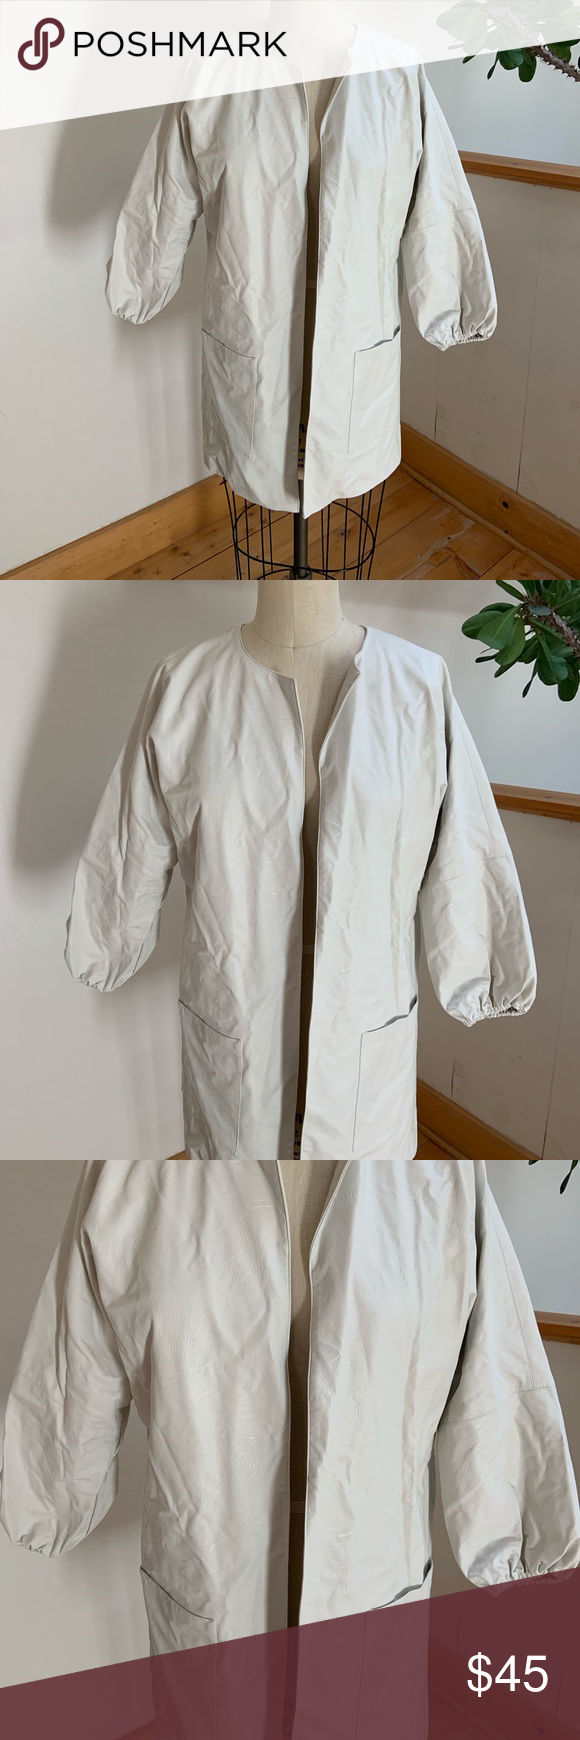 Zara White Faux Leather Jacket White hip length Viscose